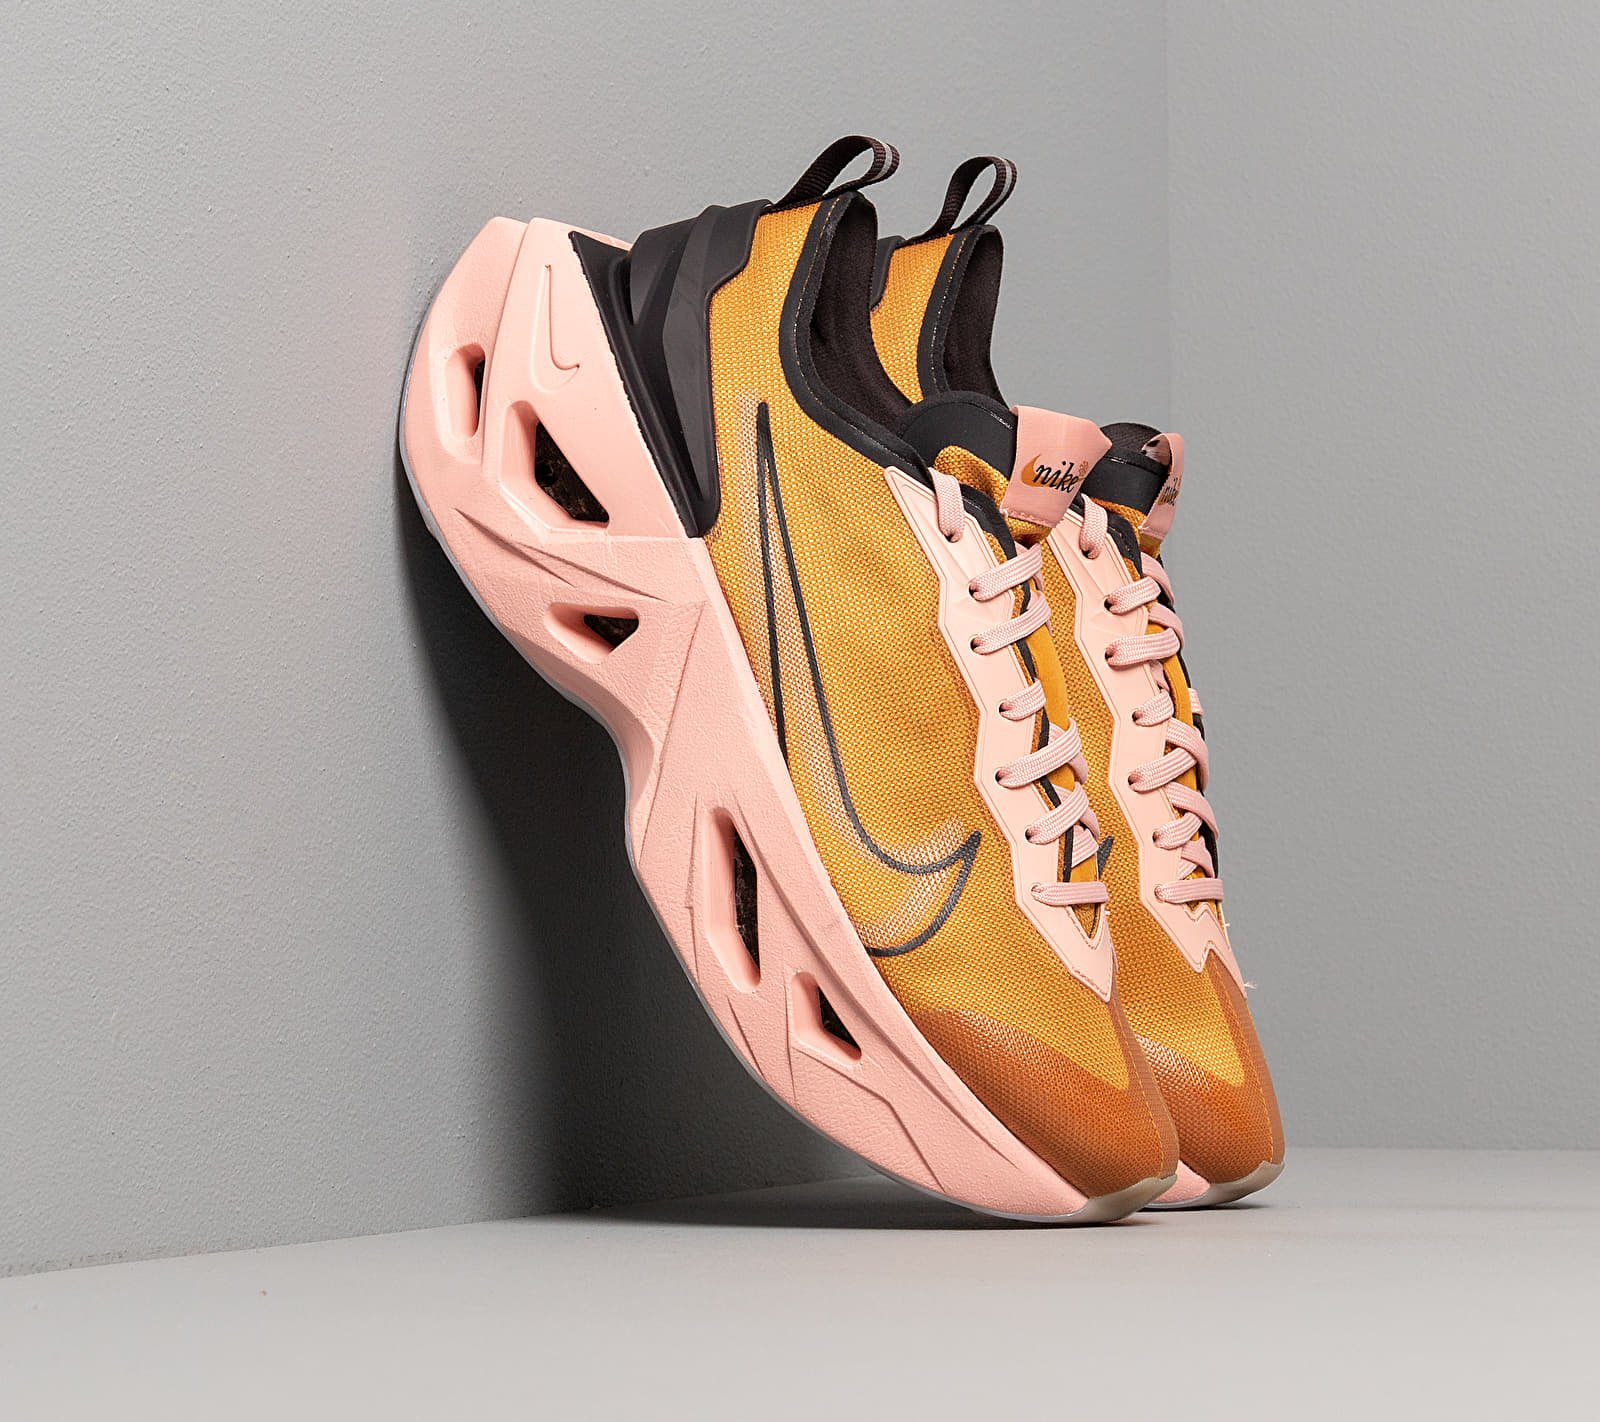 Nike W Zoom X Vista Grind Gold Suede/ Gold Suede-Oil Grey, Yellow